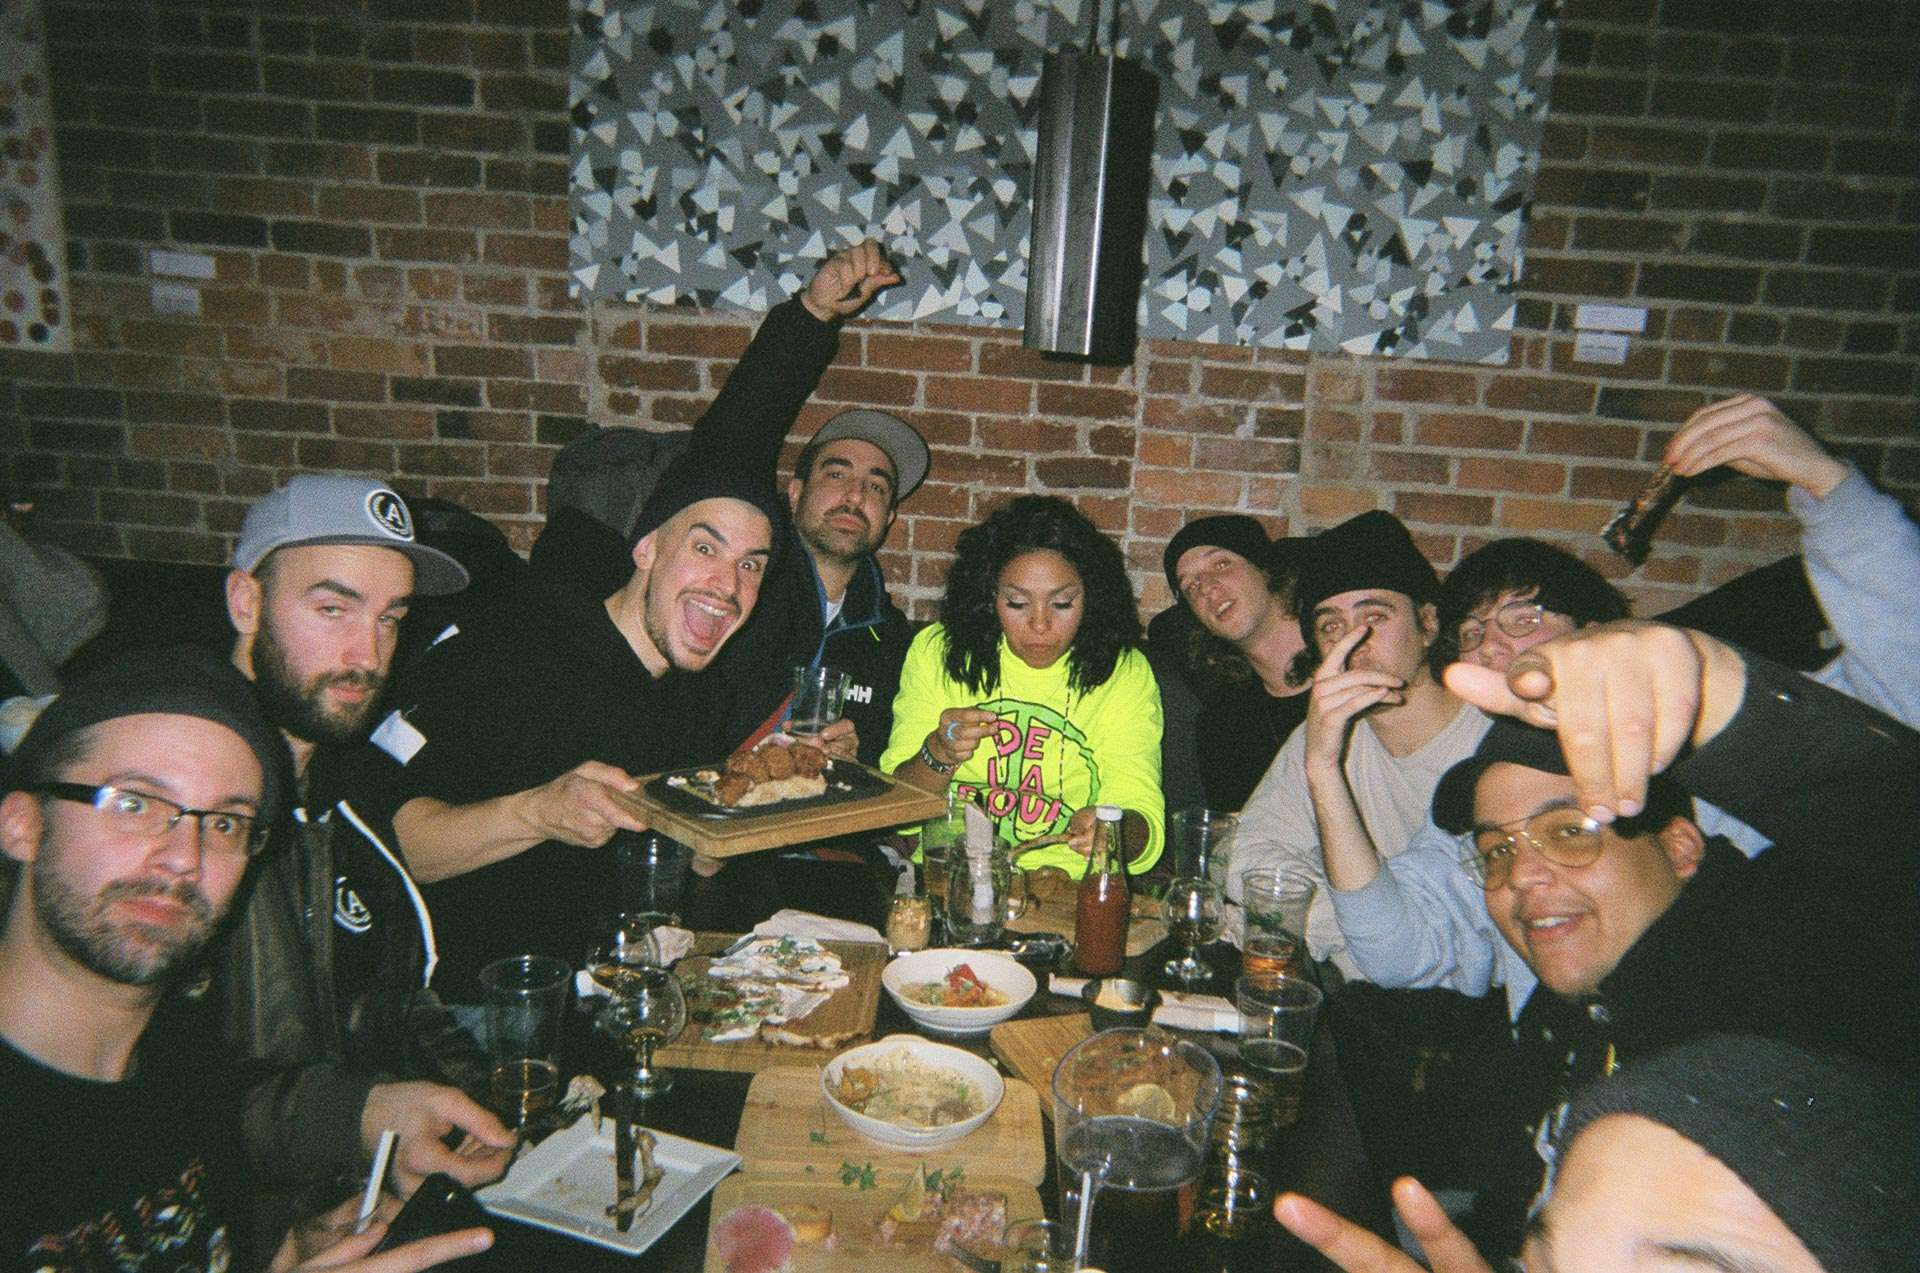 team of L'Osstidfilm documentary filmed by Vincent Ruel-Cote from Les Gamins about L'Osstidtour all eating together at restaurant smiling and laughing